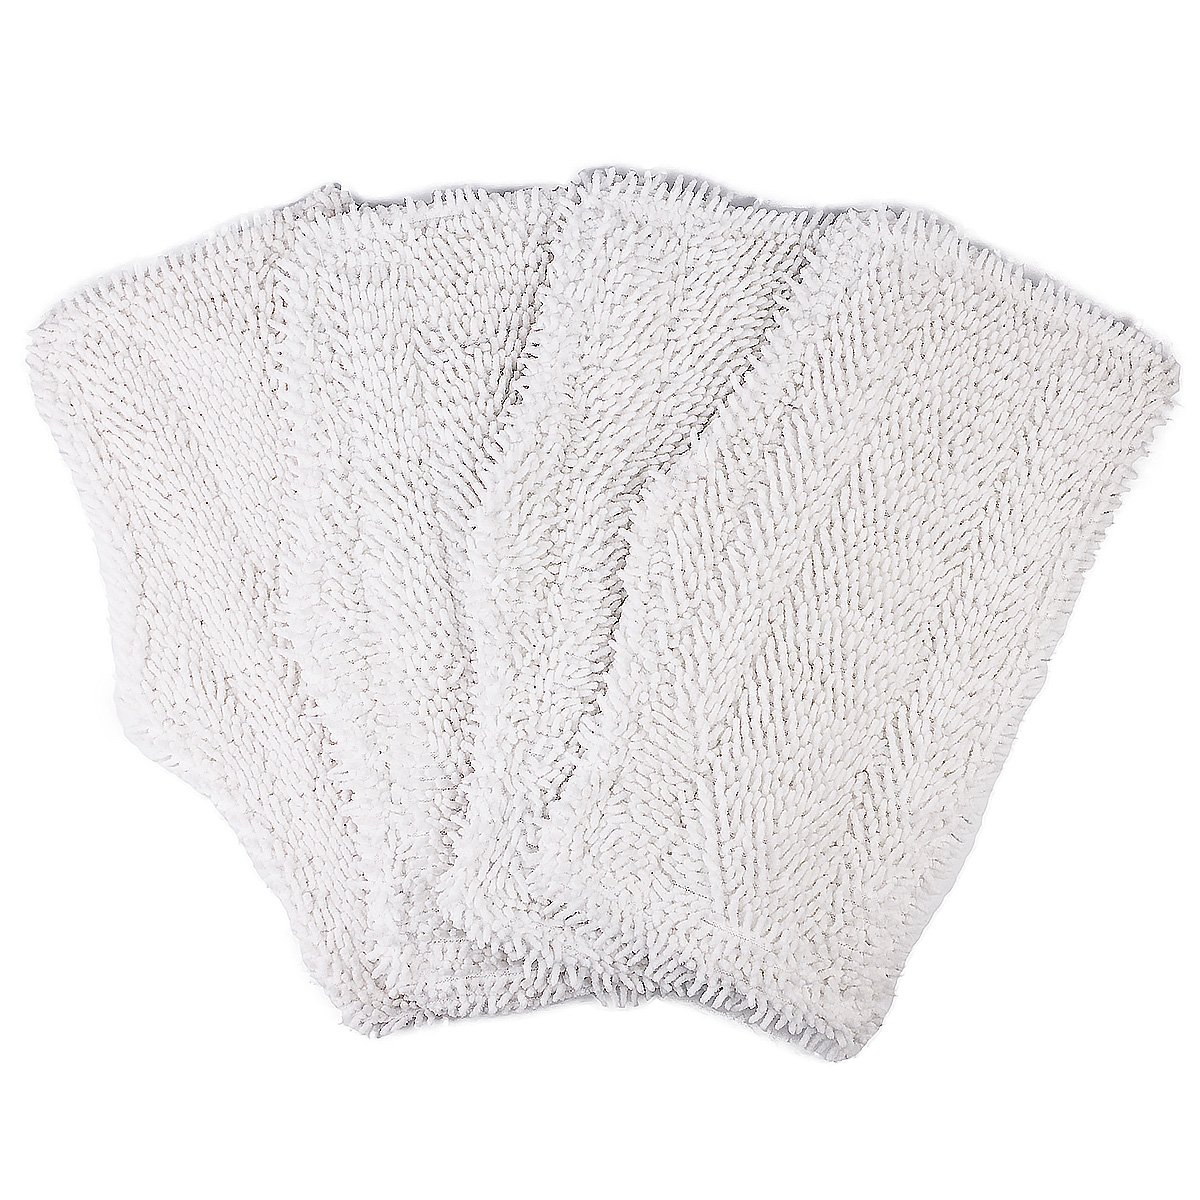 Flammi Replacement Washable Cleaning Pads Compatible for Shark Steam & Spray Mop SK410, SK435CO, SK460, SK140, SK141, S3101, S3250, S3251 by F Flammi